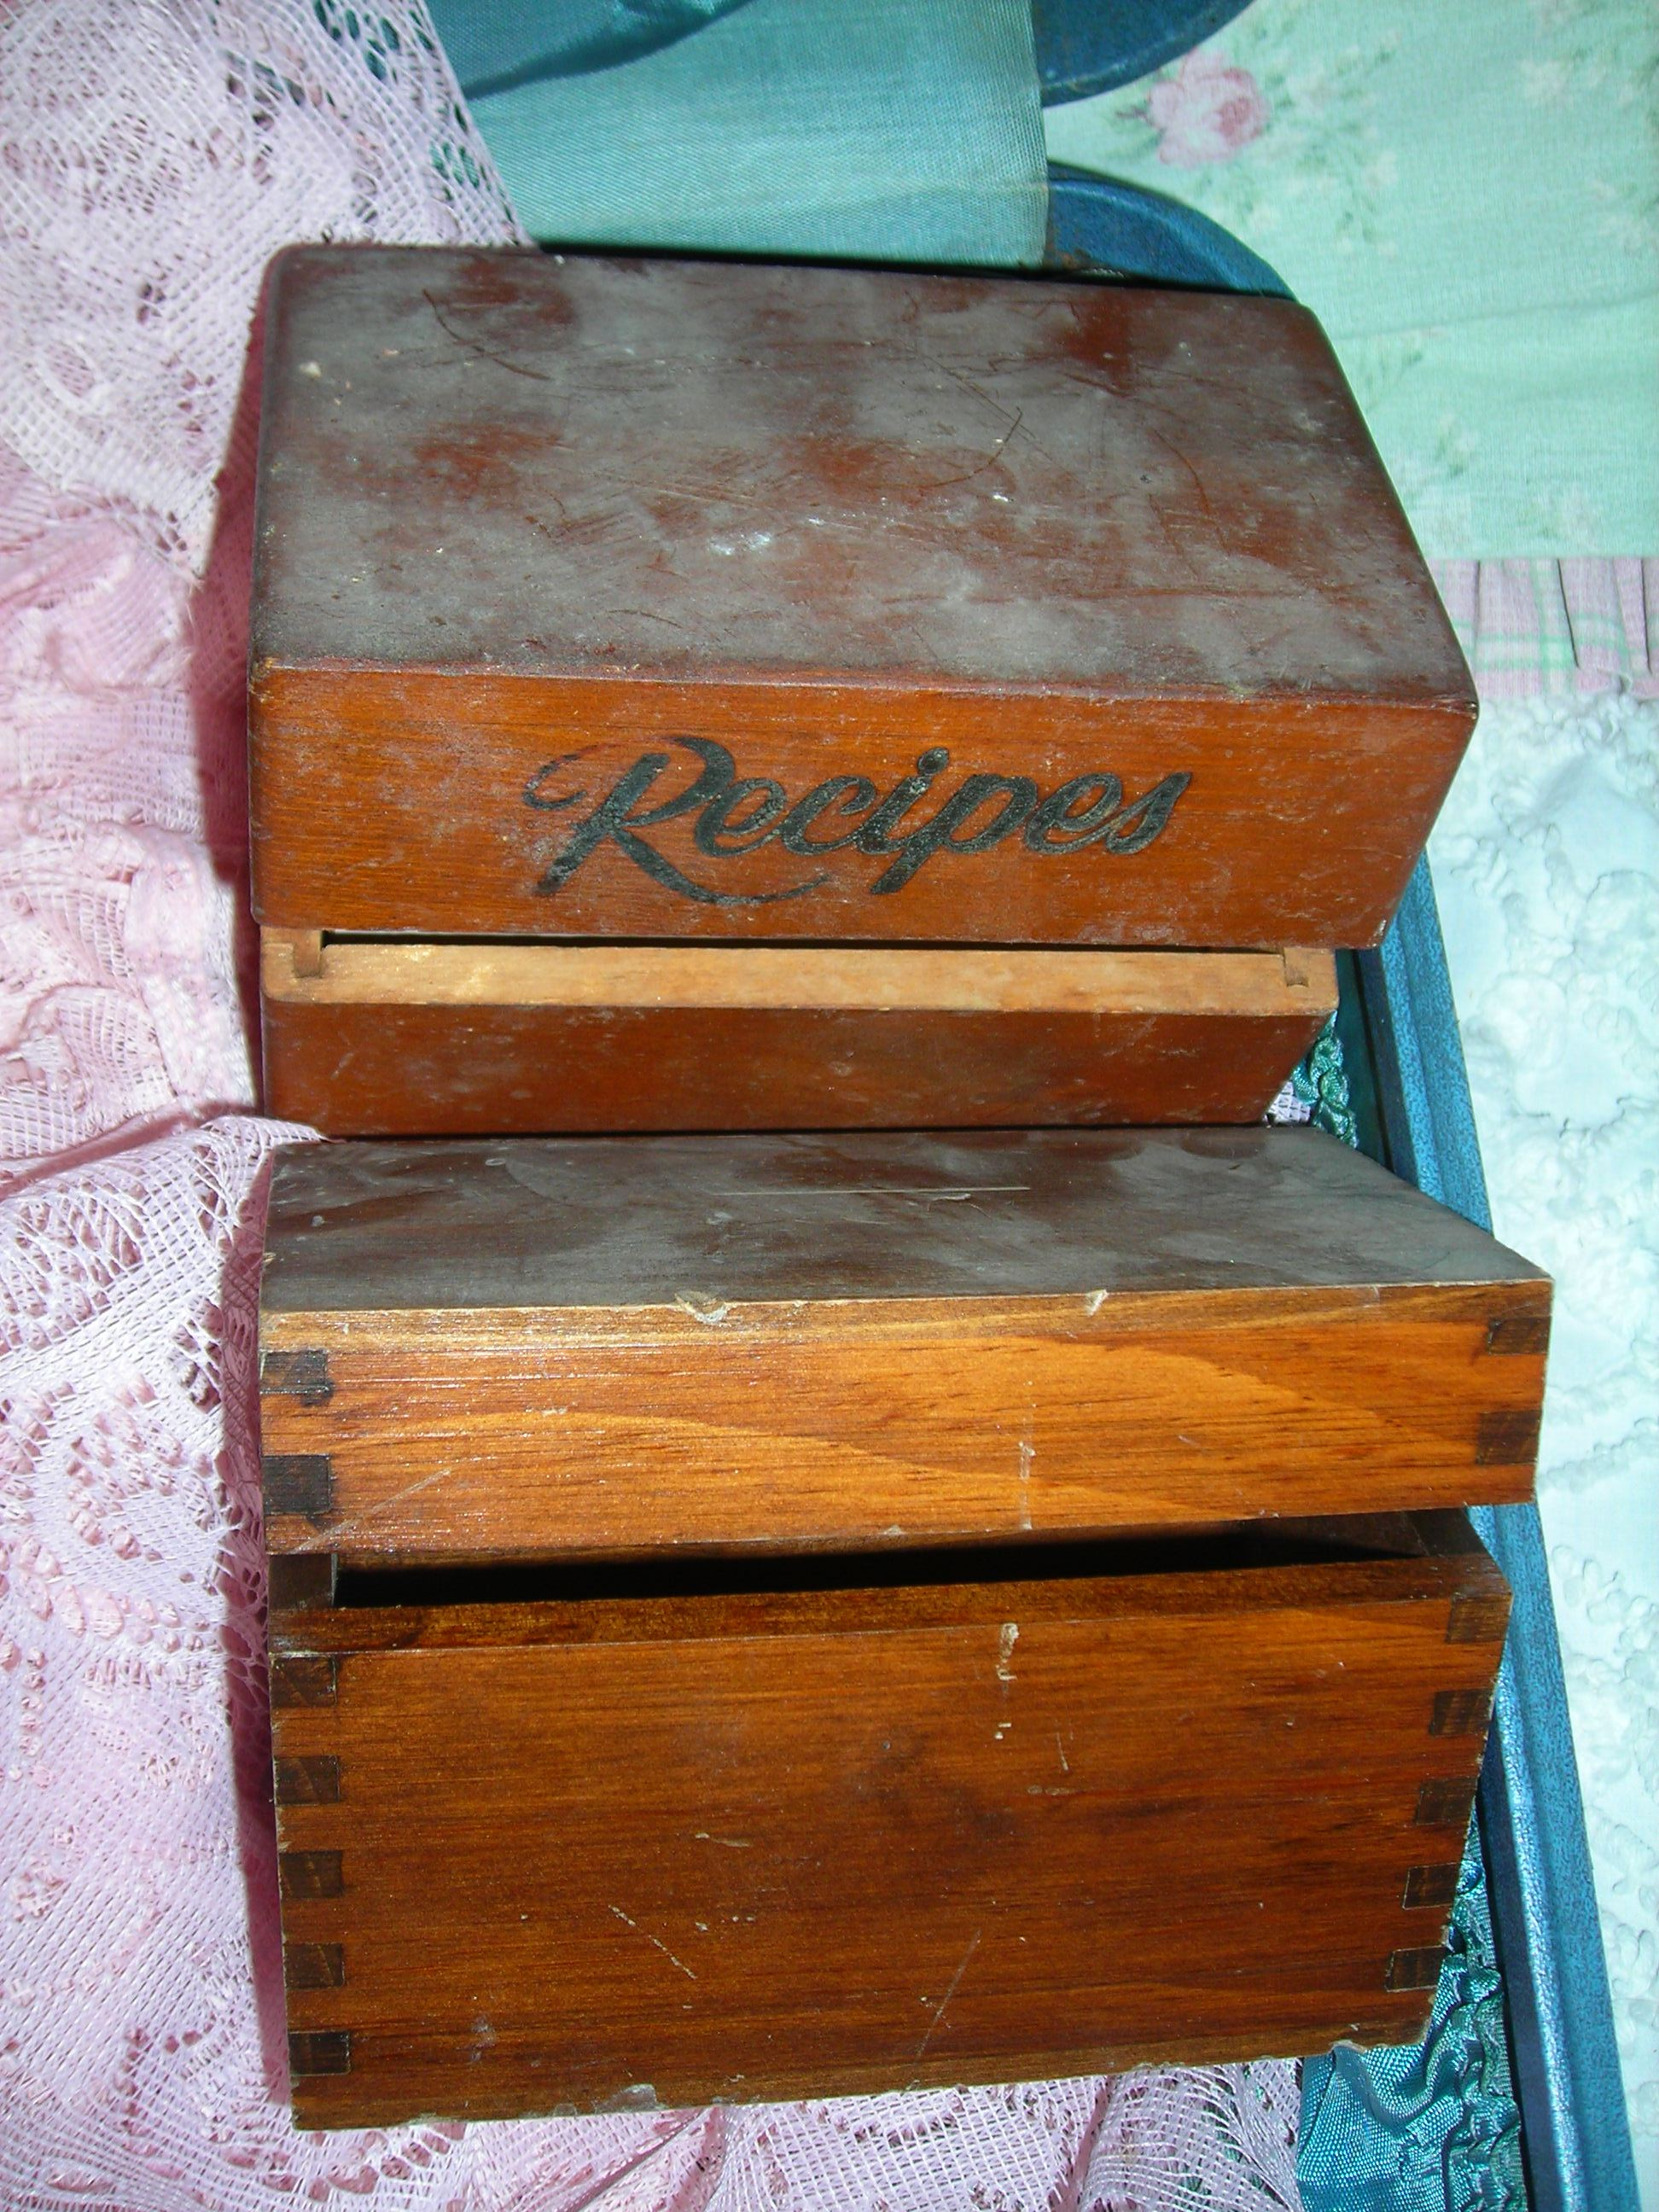 these old wooden boxes just whimpered and whined until i picked them up. so dusty, so musty. will shabby them up with some pink paint and bling